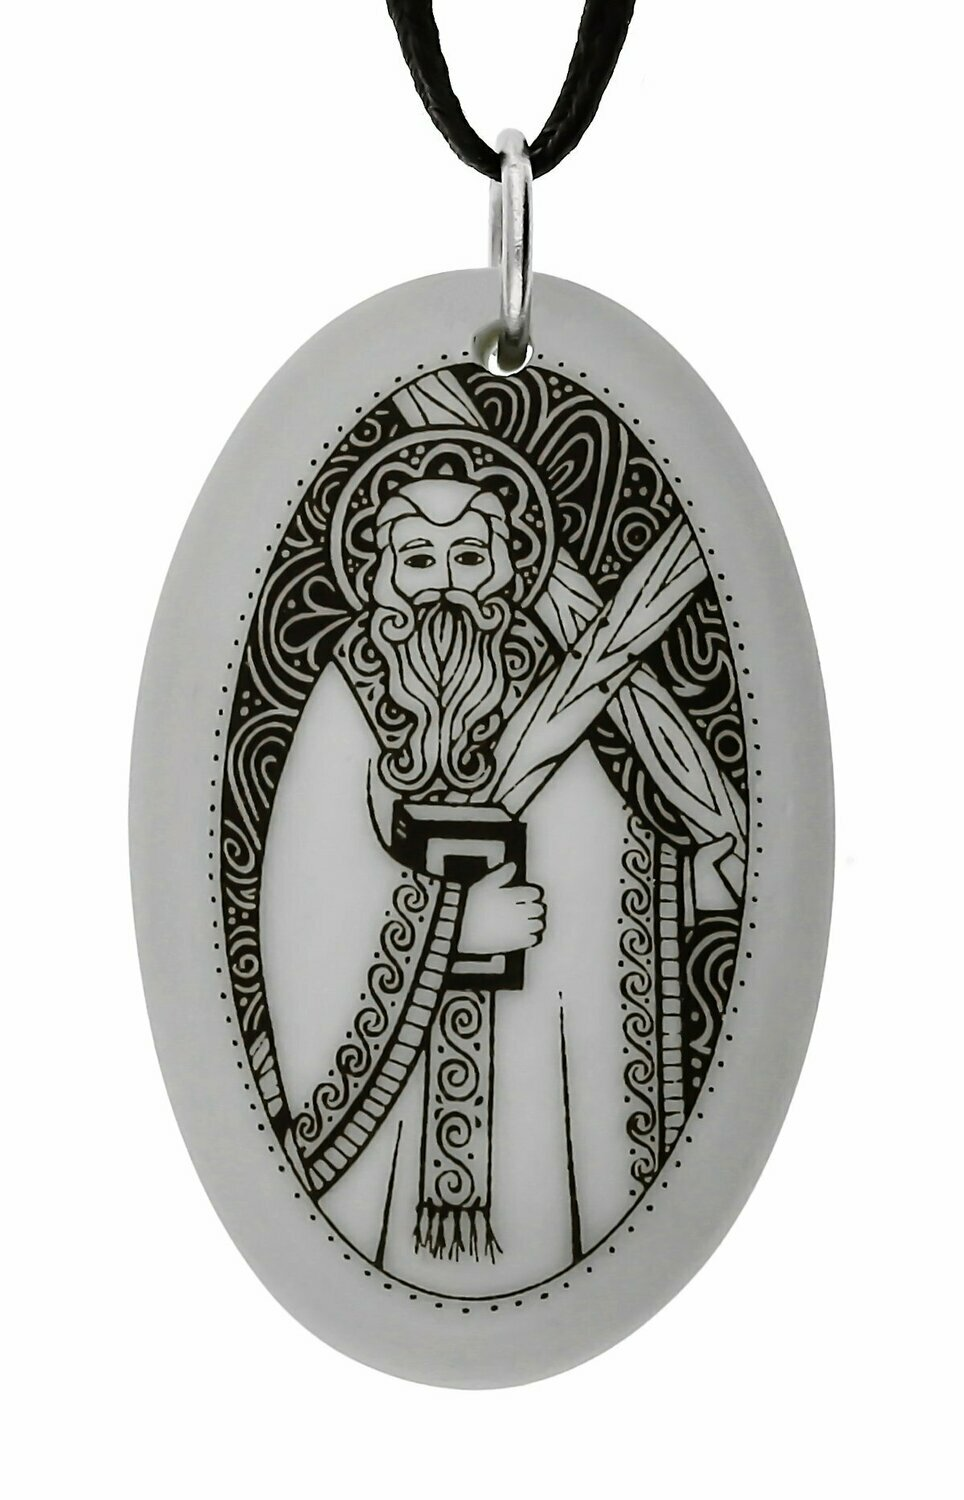 Saint Andrew the Apostle Oval Handmade Porcelain Pendant